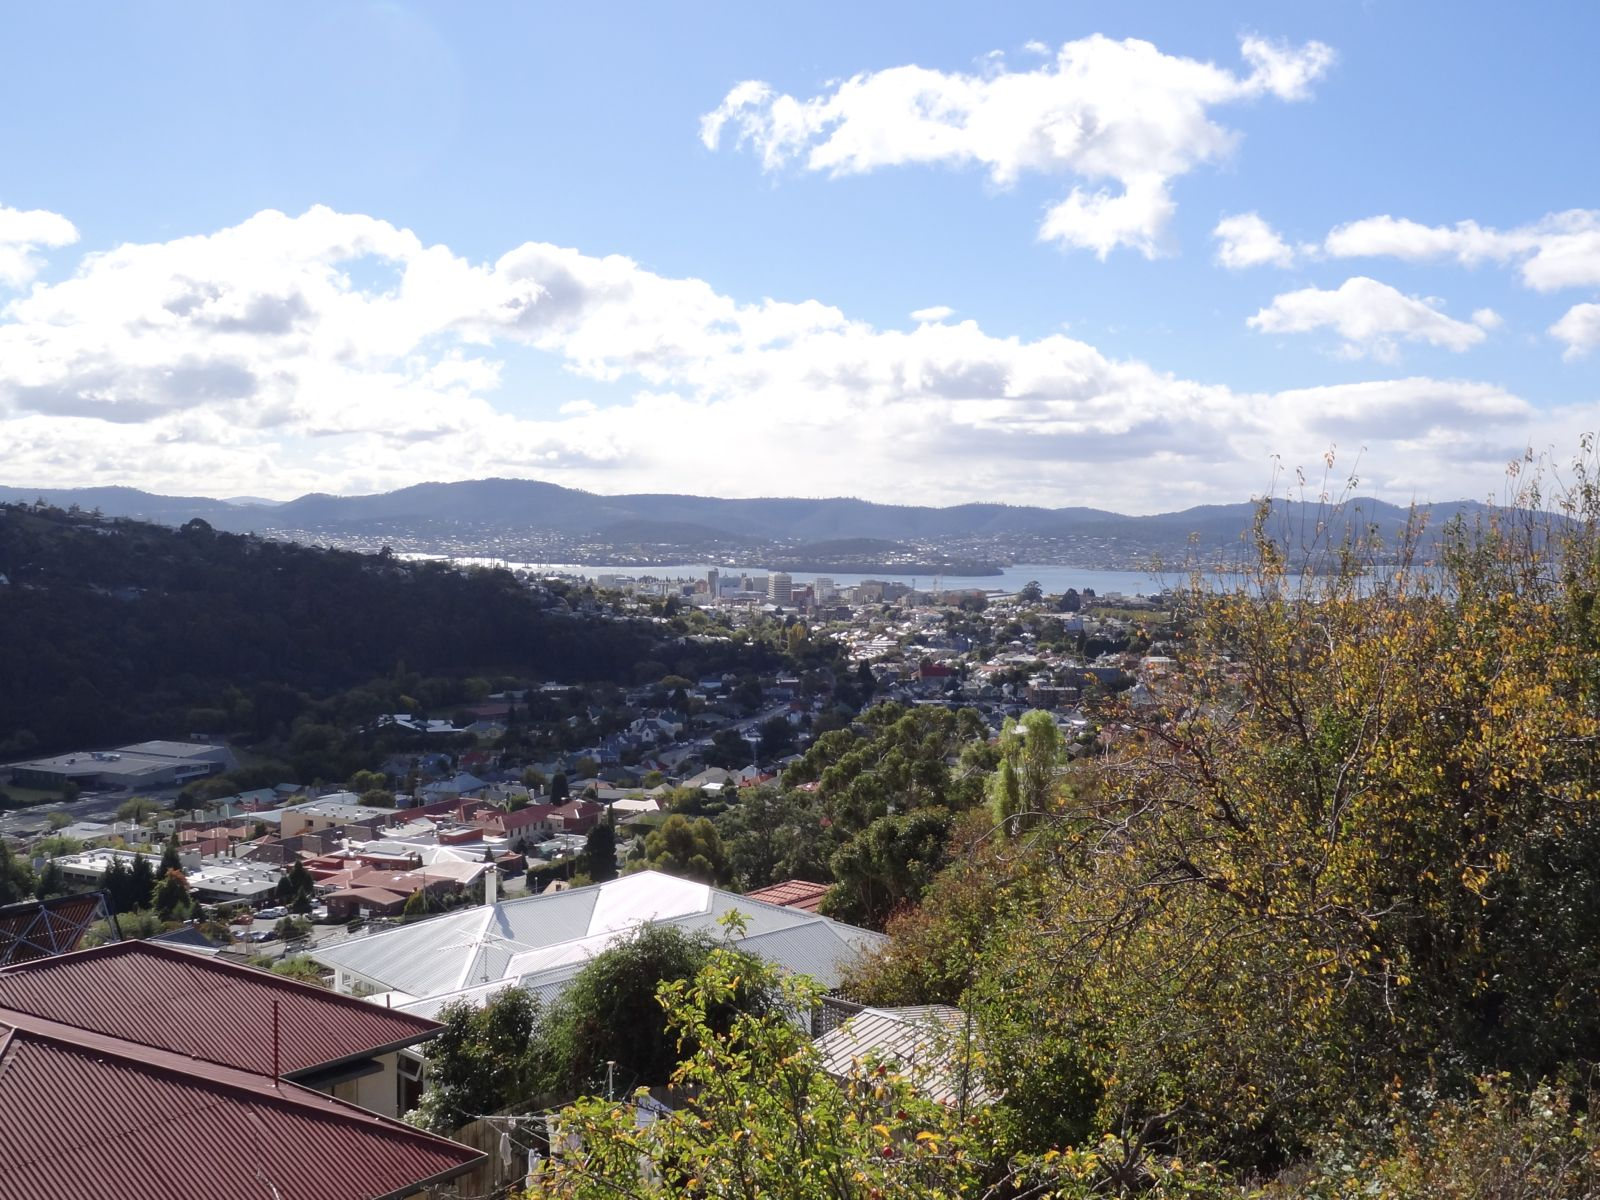 Almost back into the city. Hobart downtown and Bellerive on the far shore